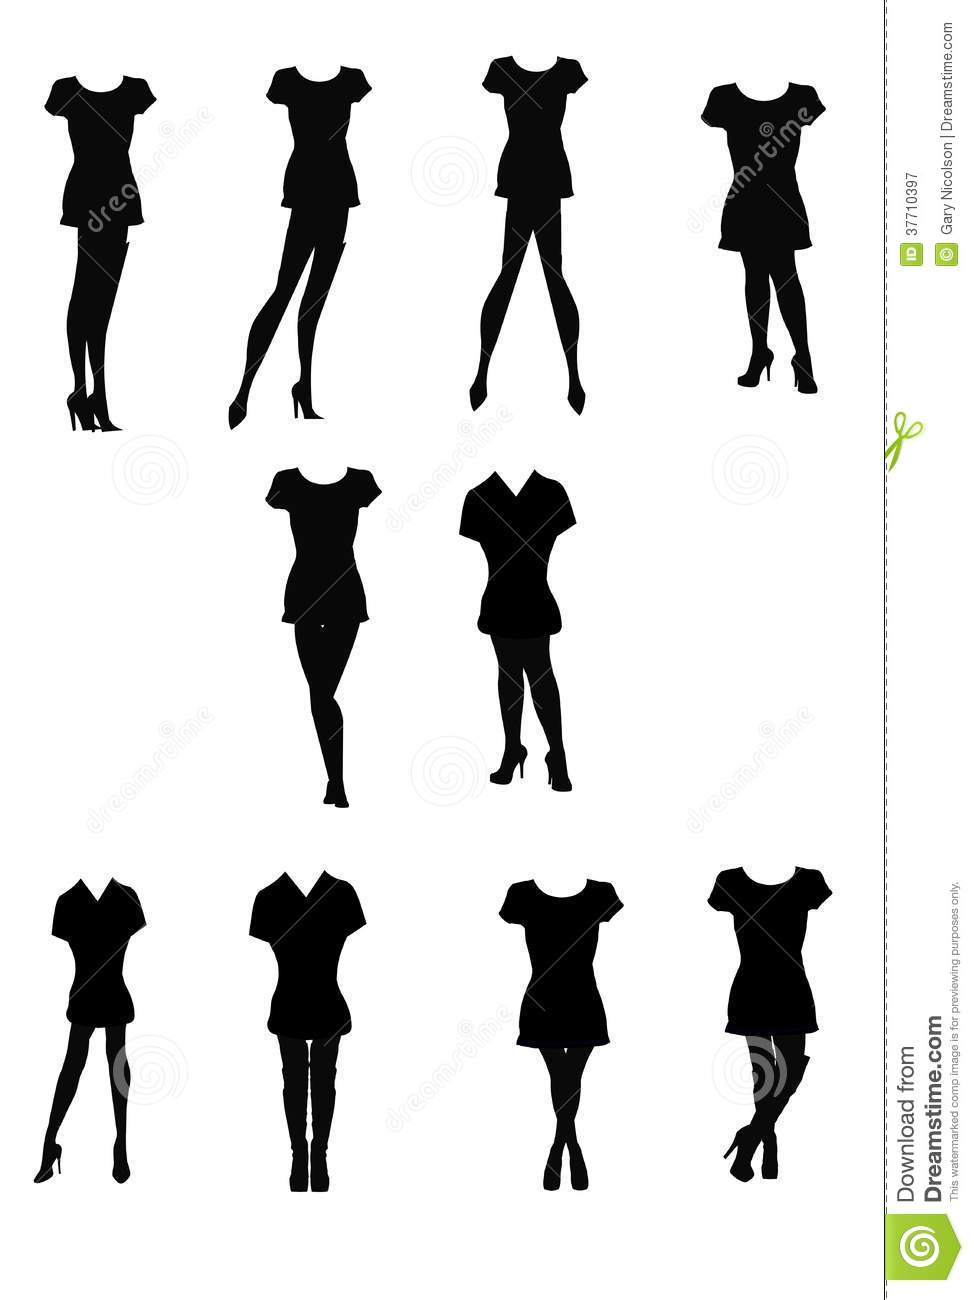 T Shirts And Legs Silhouettes Royalty Free Stock ...